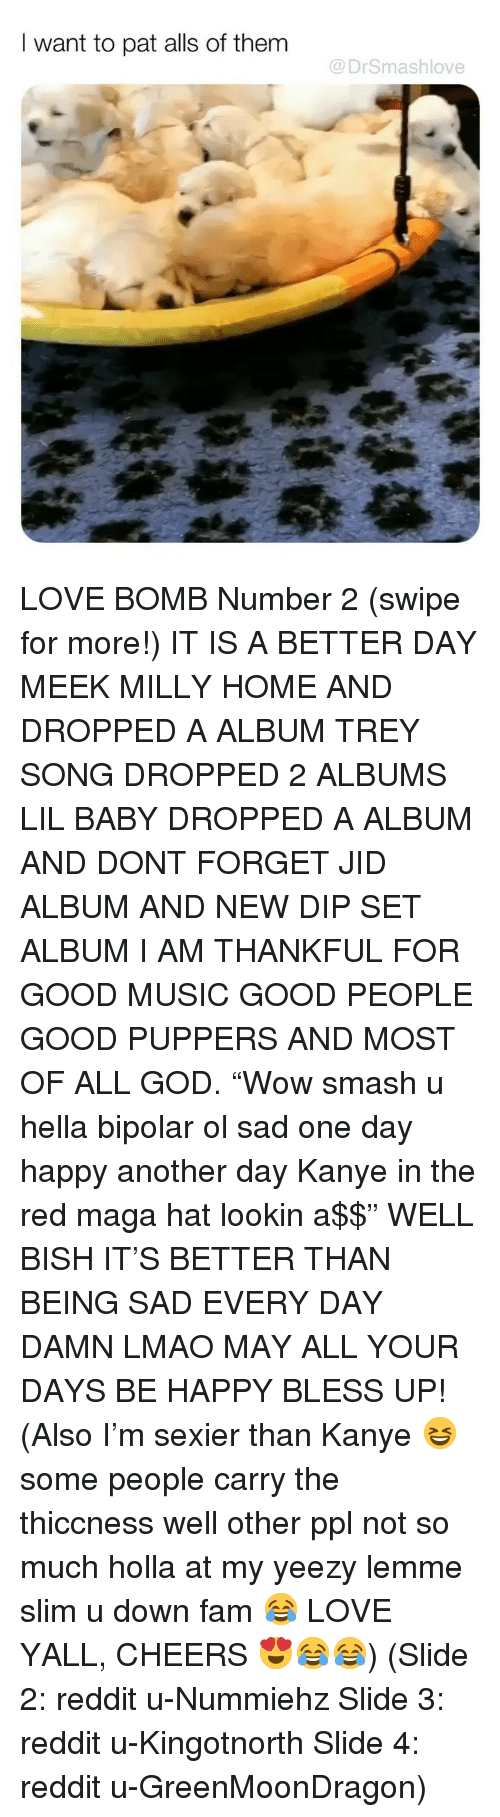 """Bless Up, Fam, and God: I want to pat alls of them  @DrSmashlove LOVE BOMB Number 2 (swipe for more!) IT IS A BETTER DAY MEEK MILLY HOME AND DROPPED A ALBUM TREY SONG DROPPED 2 ALBUMS LIL BABY DROPPED A ALBUM AND DONT FORGET JID ALBUM AND NEW DIP SET ALBUM I AM THANKFUL FOR GOOD MUSIC GOOD PEOPLE GOOD PUPPERS AND MOST OF ALL GOD. """"Wow smash u hella bipolar ol sad one day happy another day Kanye in the red maga hat lookin a$$"""" WELL BISH IT'S BETTER THAN BEING SAD EVERY DAY DAMN LMAO MAY ALL YOUR DAYS BE HAPPY BLESS UP! (Also I'm sexier than Kanye 😆 some people carry the thiccness well other ppl not so much holla at my yeezy lemme slim u down fam 😂 LOVE YALL, CHEERS 😍😂😂) (Slide 2: reddit u-Nummiehz Slide 3: reddit u-Kingotnorth Slide 4: reddit u-GreenMoonDragon)"""